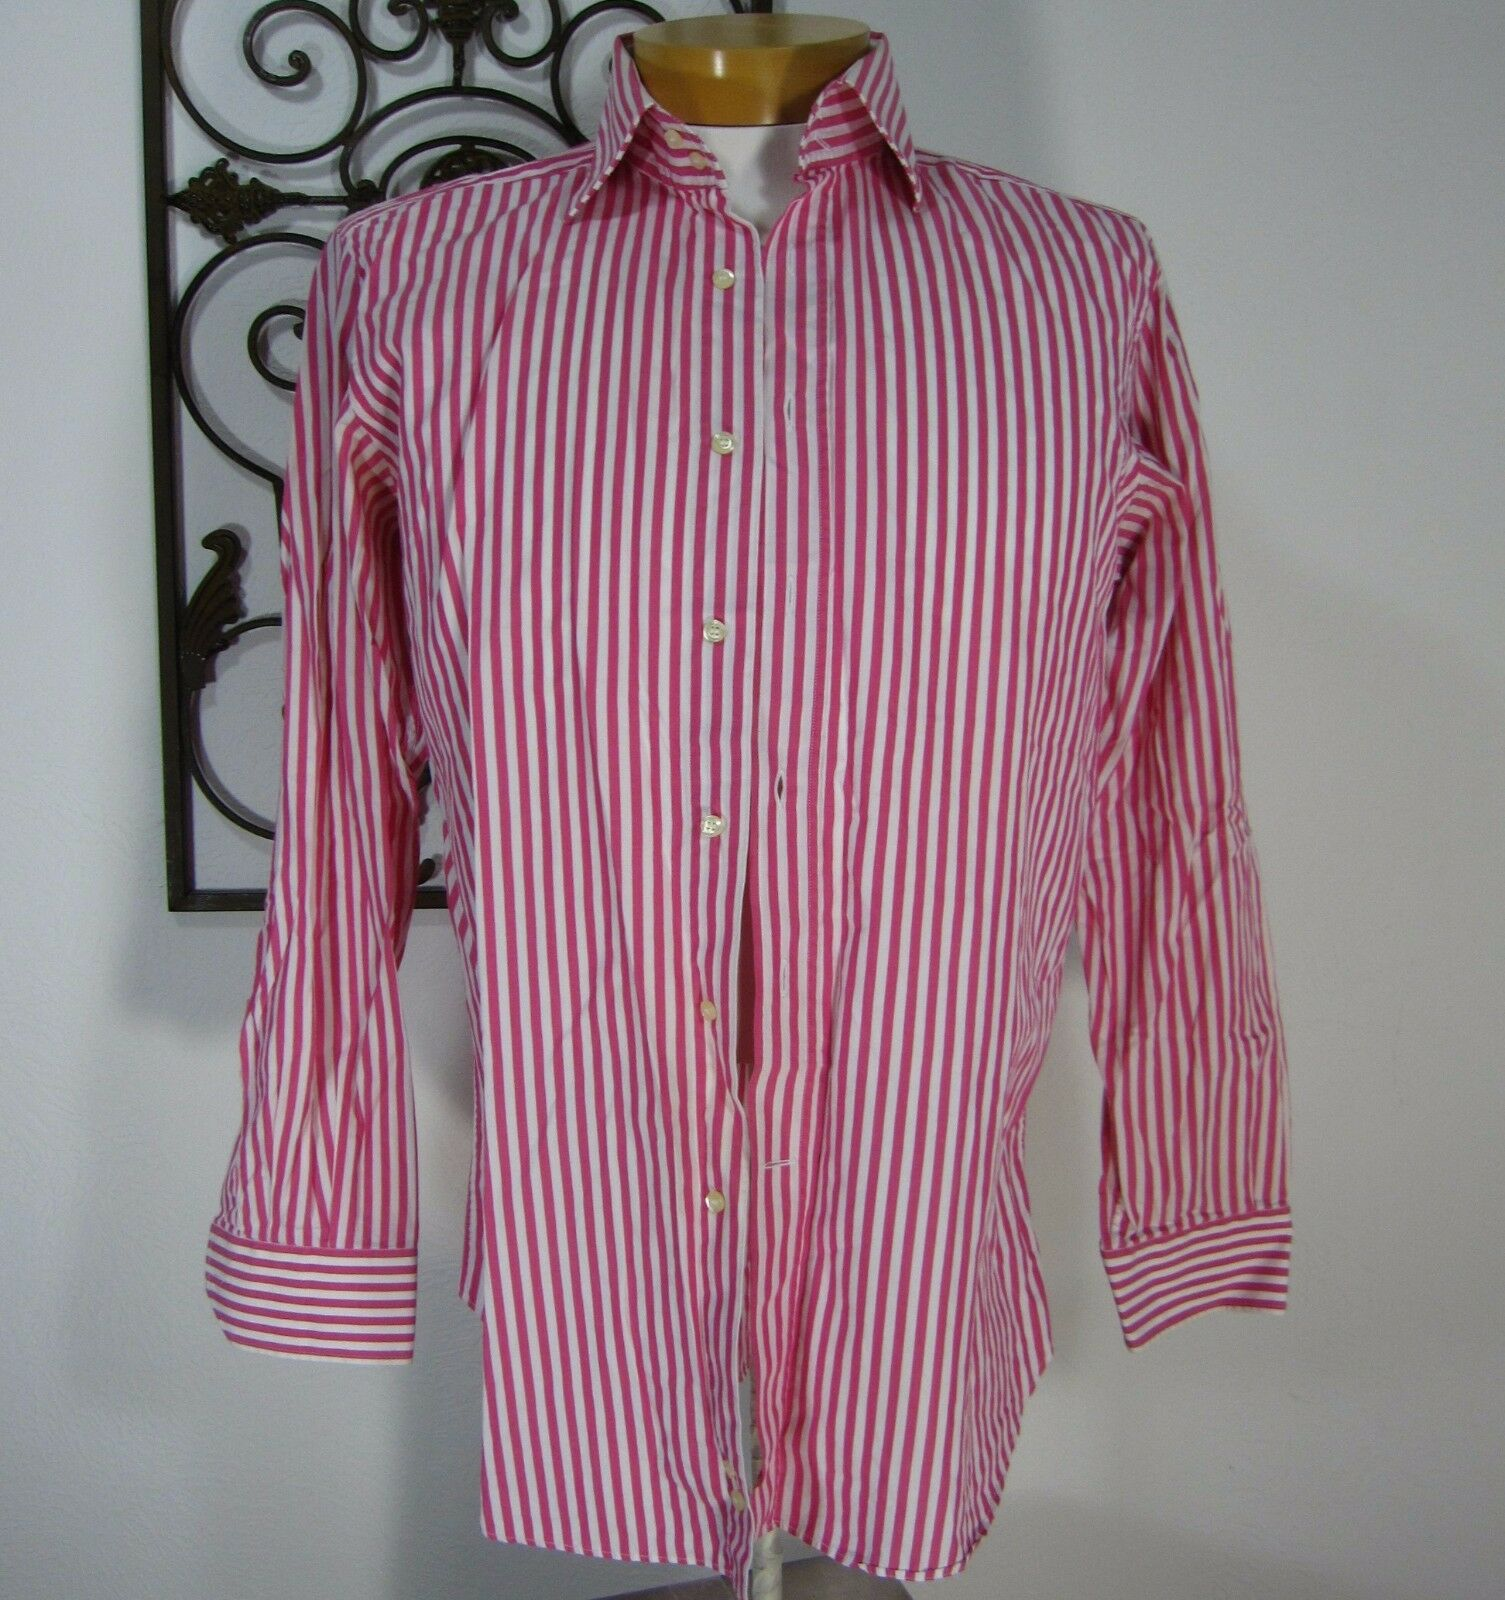 ETRO MILANO ITALY  COTTON LONG SLEEVE CASUAL SHIRT SIZE 41 PINK WHITE STRIPED